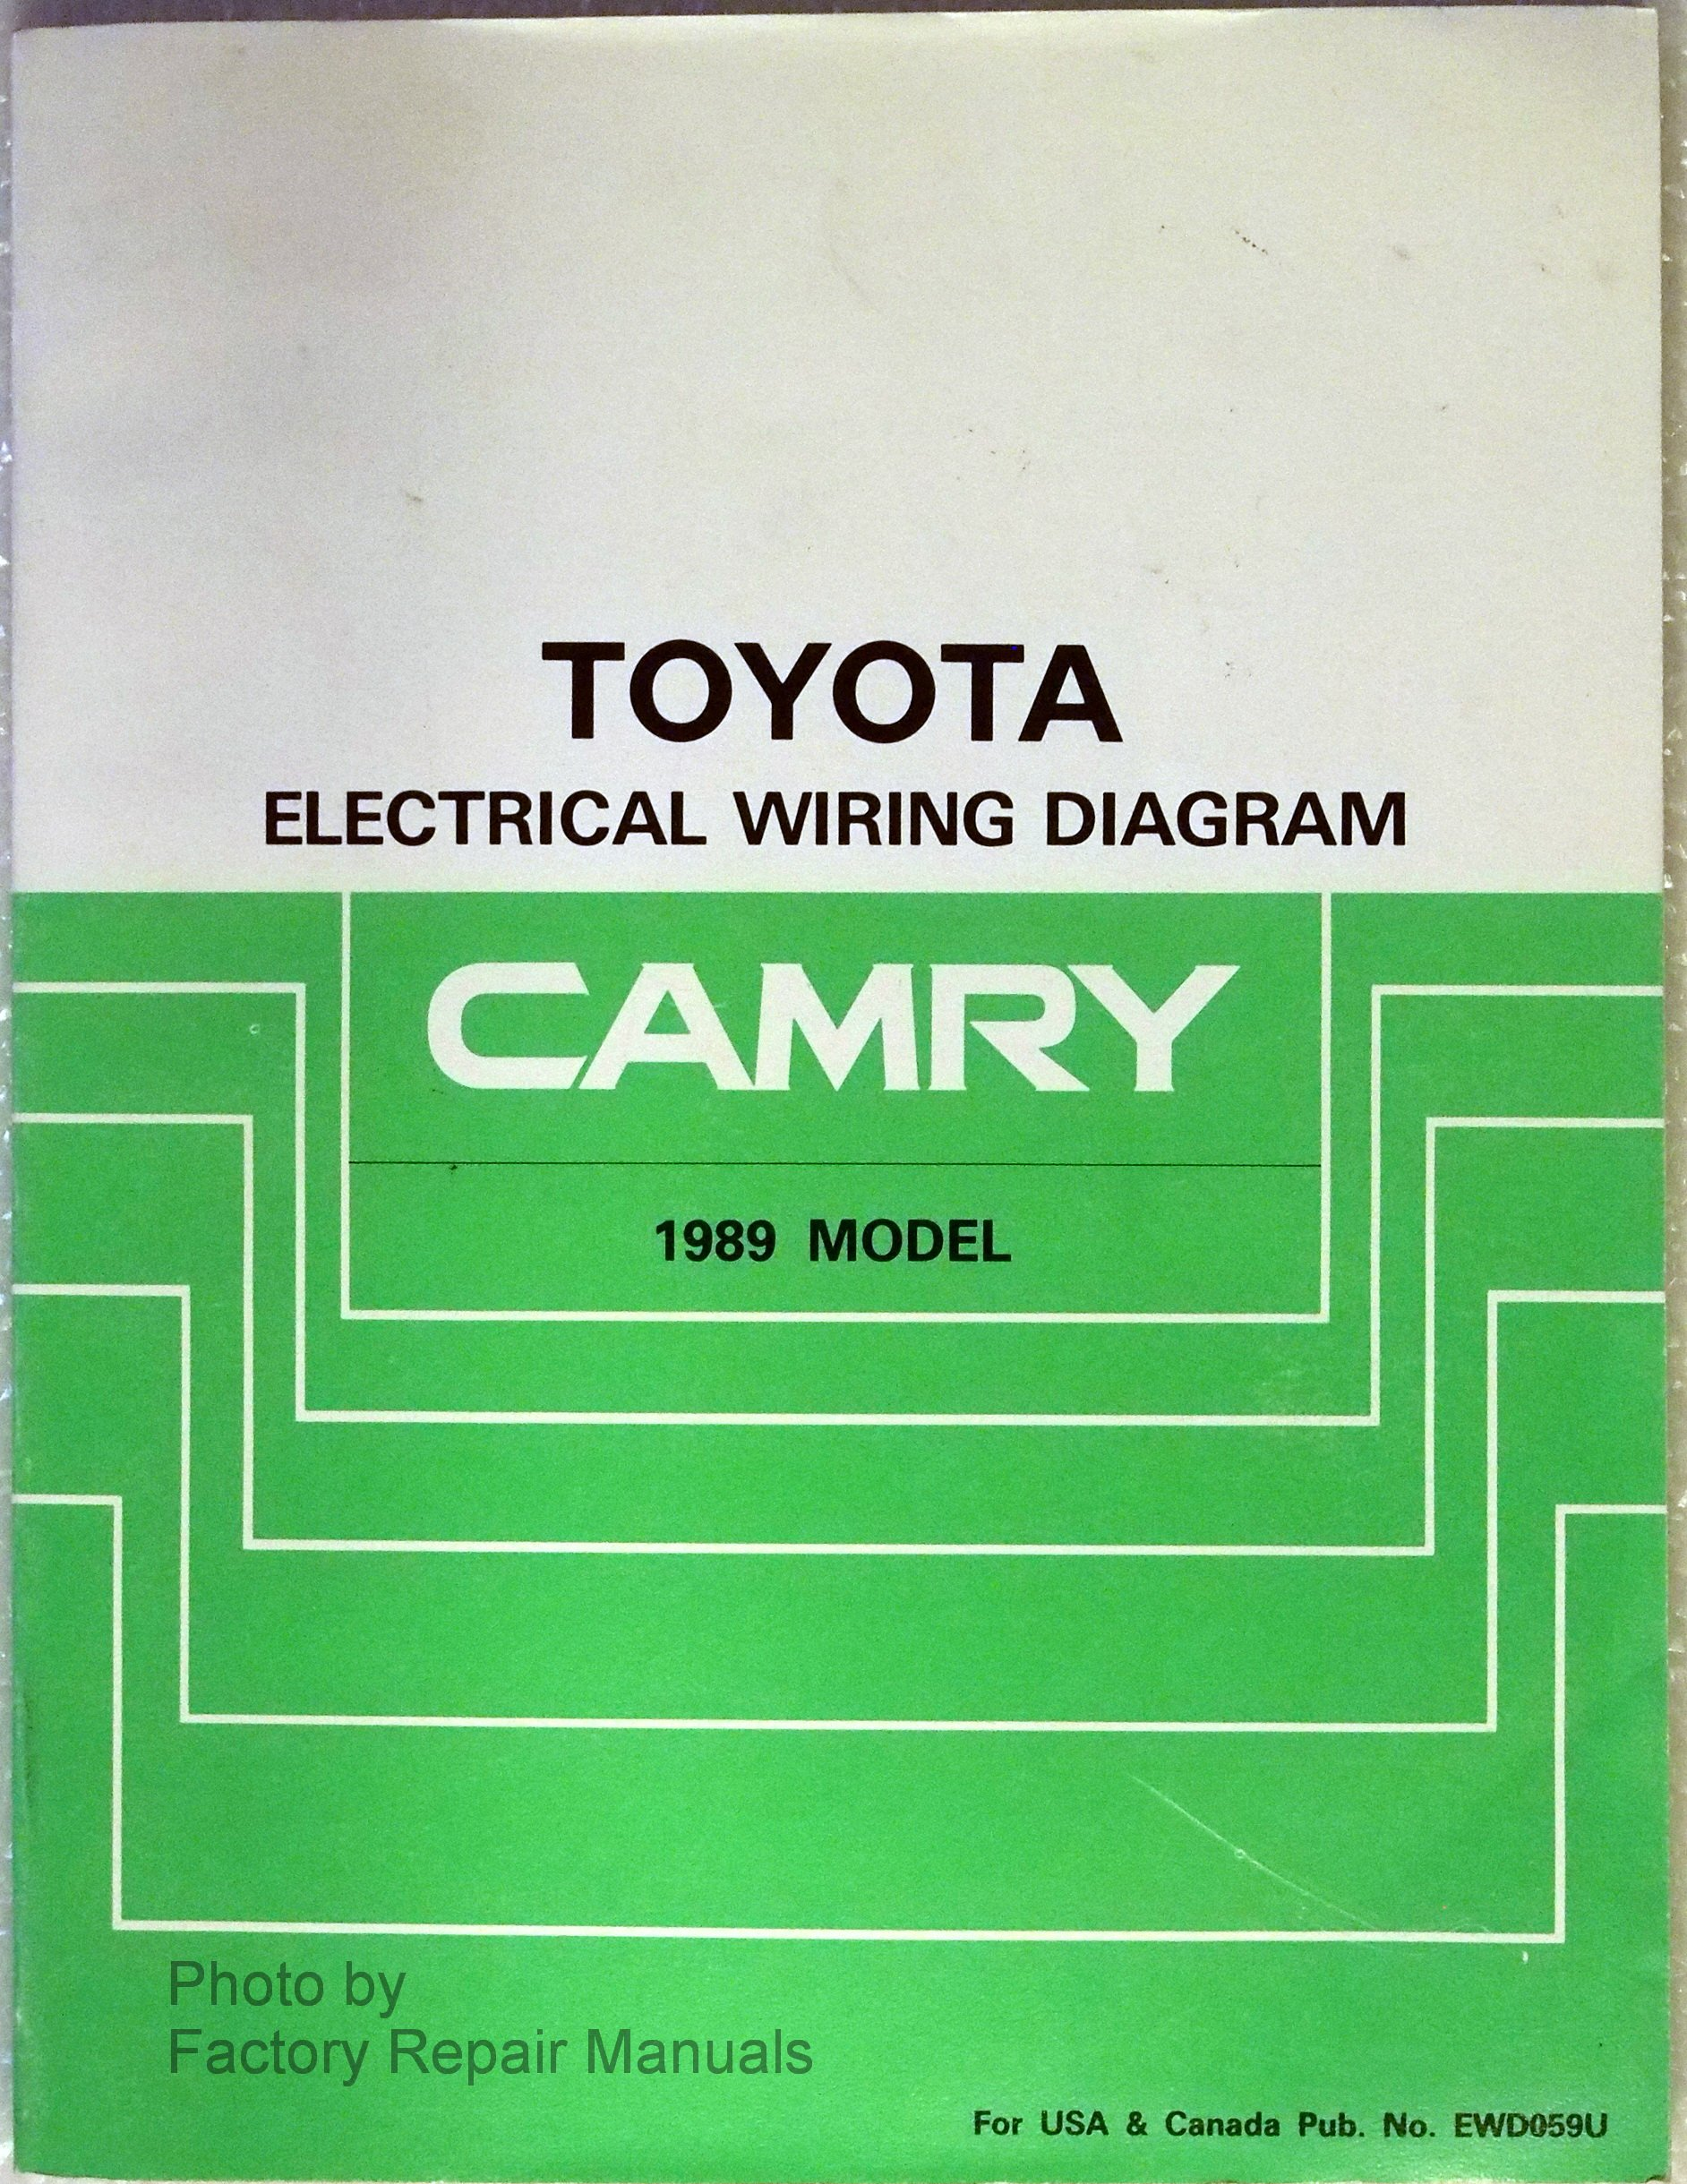 1989 Toyota Camry Electrical Wiring Diagram Manual Dodge Model Books